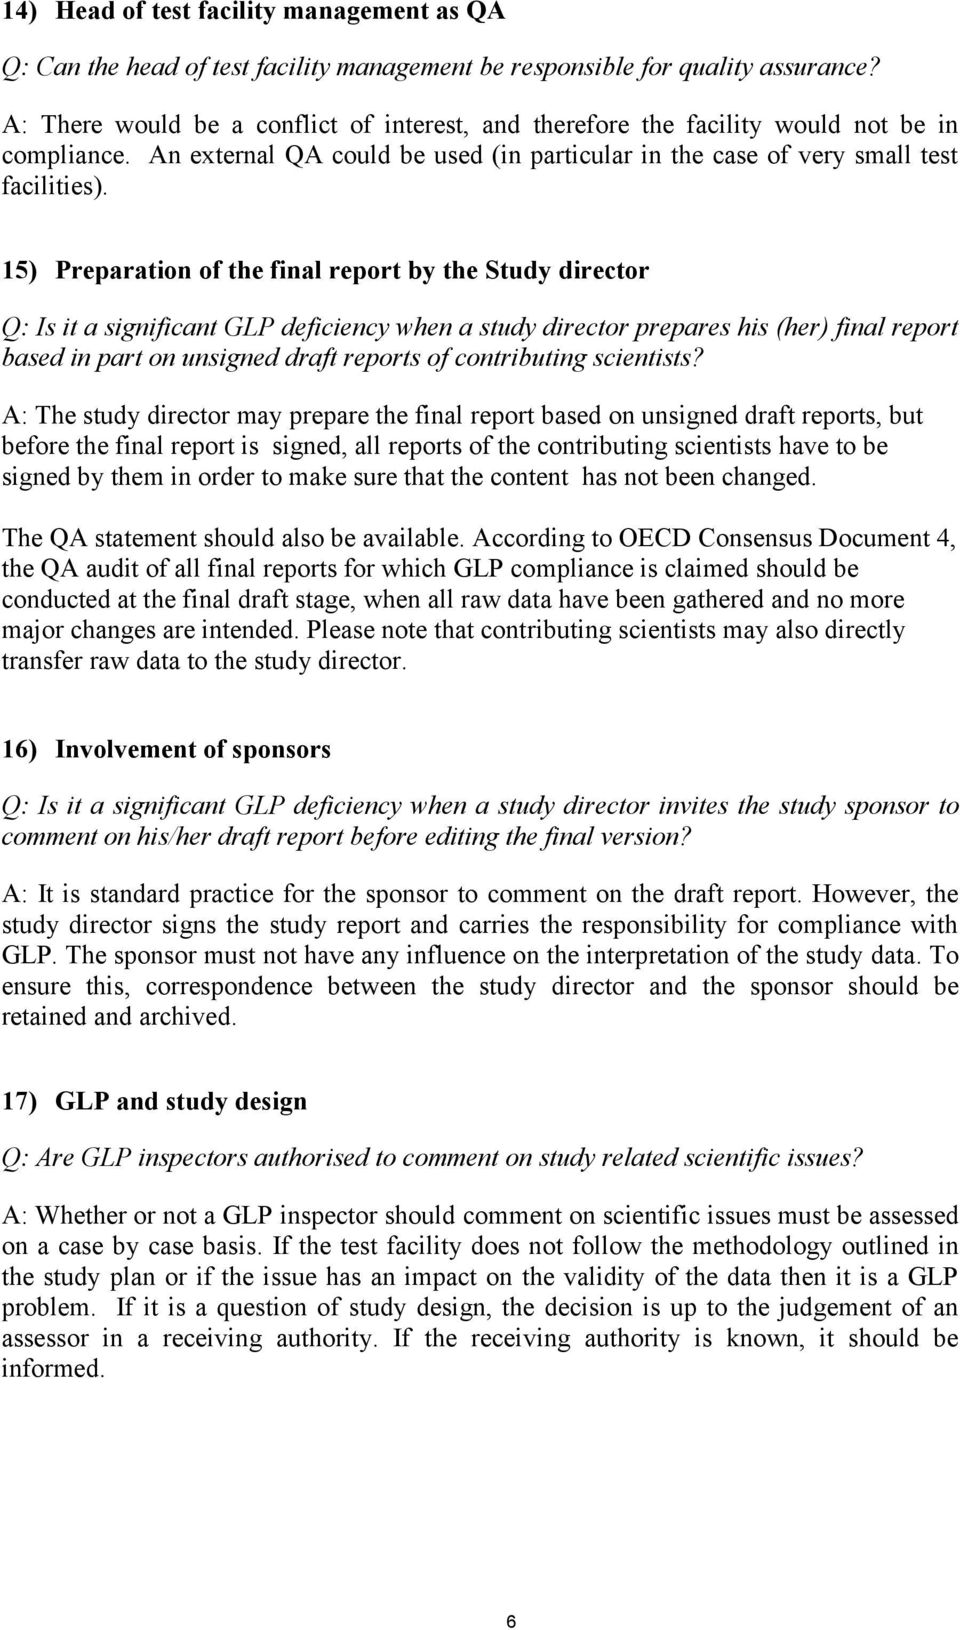 15) Preparation of the final report by the Study director Q: Is it a significant GLP deficiency when a study director prepares his (her) final report based in part on unsigned draft reports of